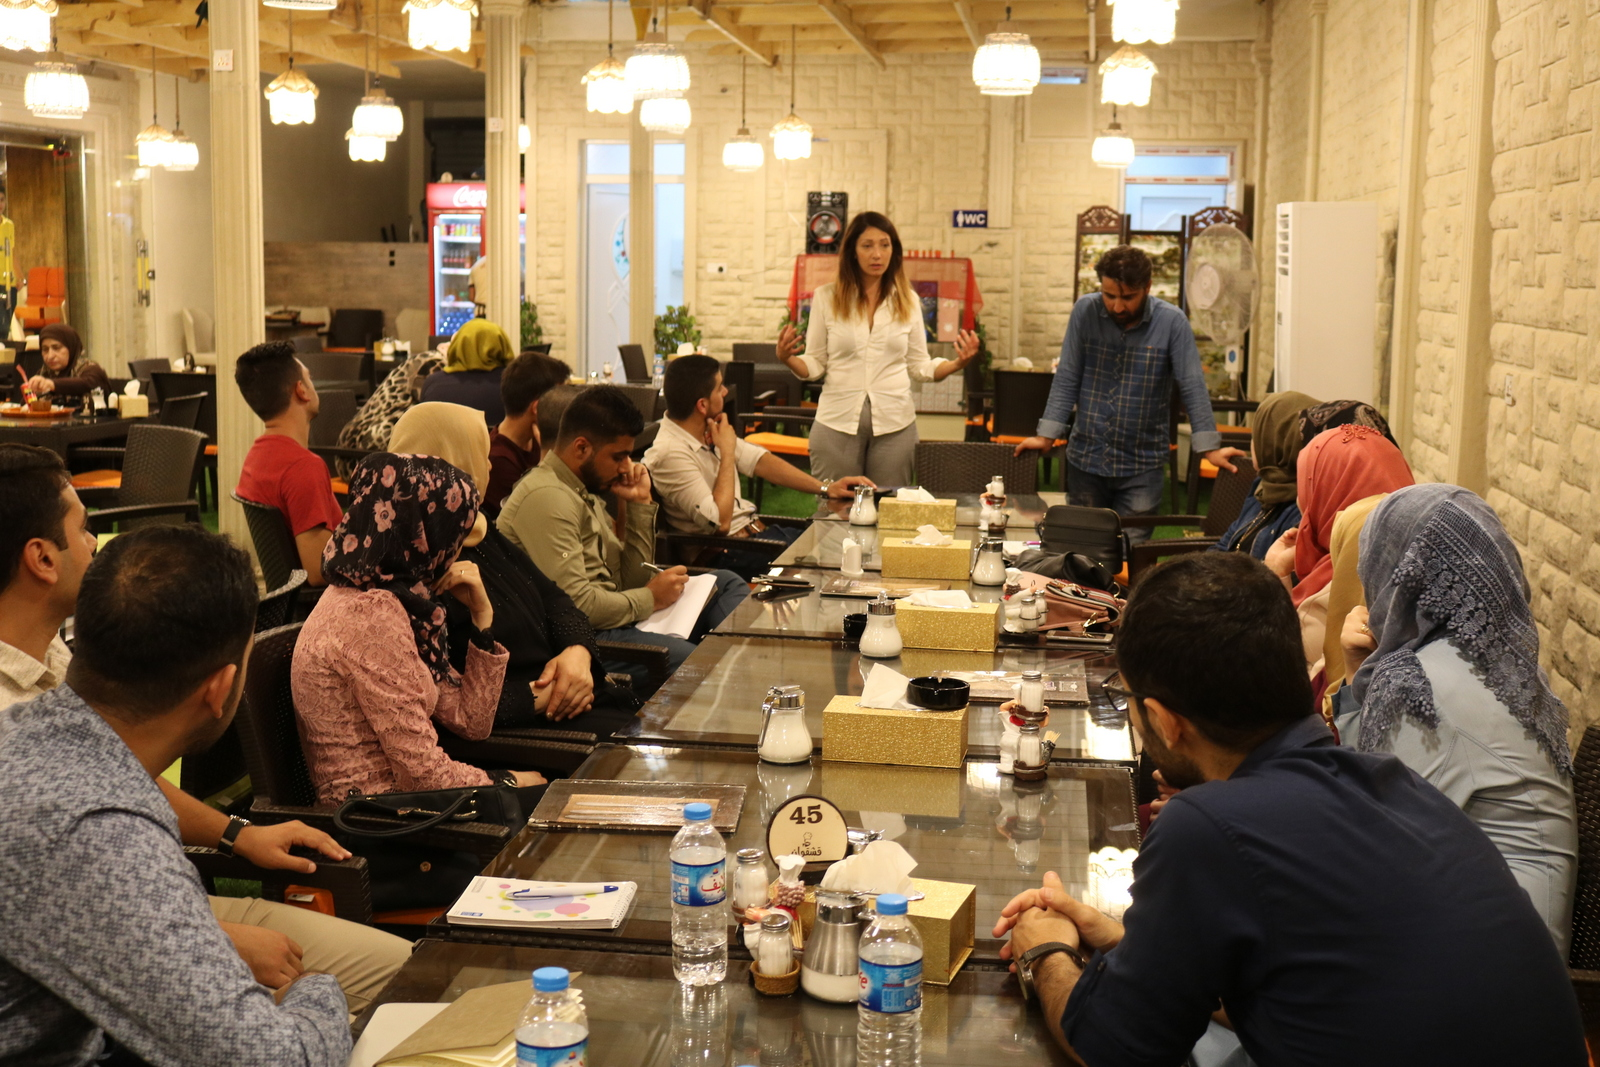 Beatrice Maneshi holds a focus group on entrepreneurship with youth in Mosul in July 2018.